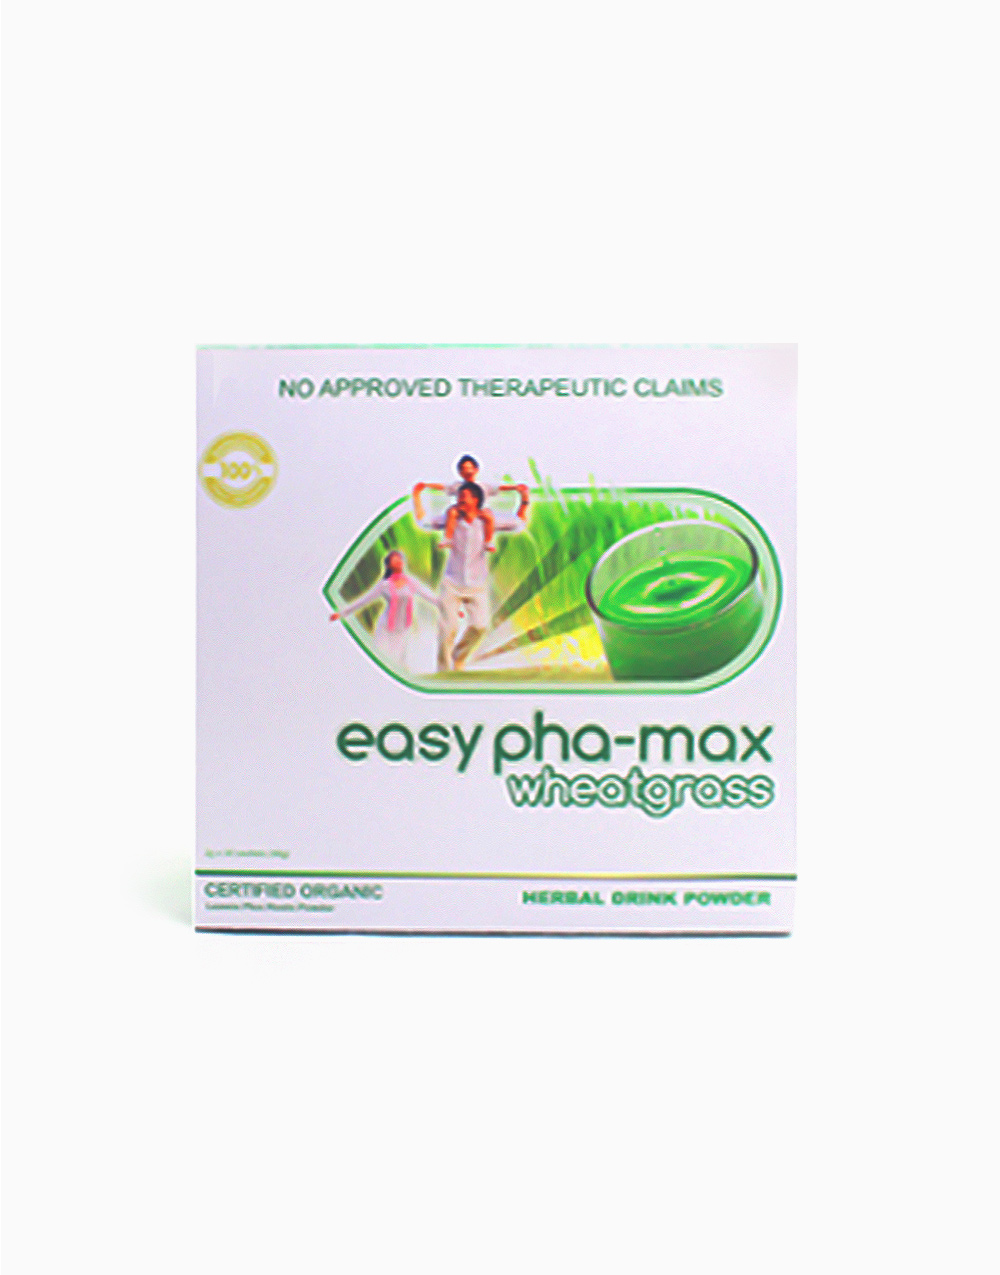 Wheatgrass Herbal Drink (30 Sachets) by Easy Pha-max